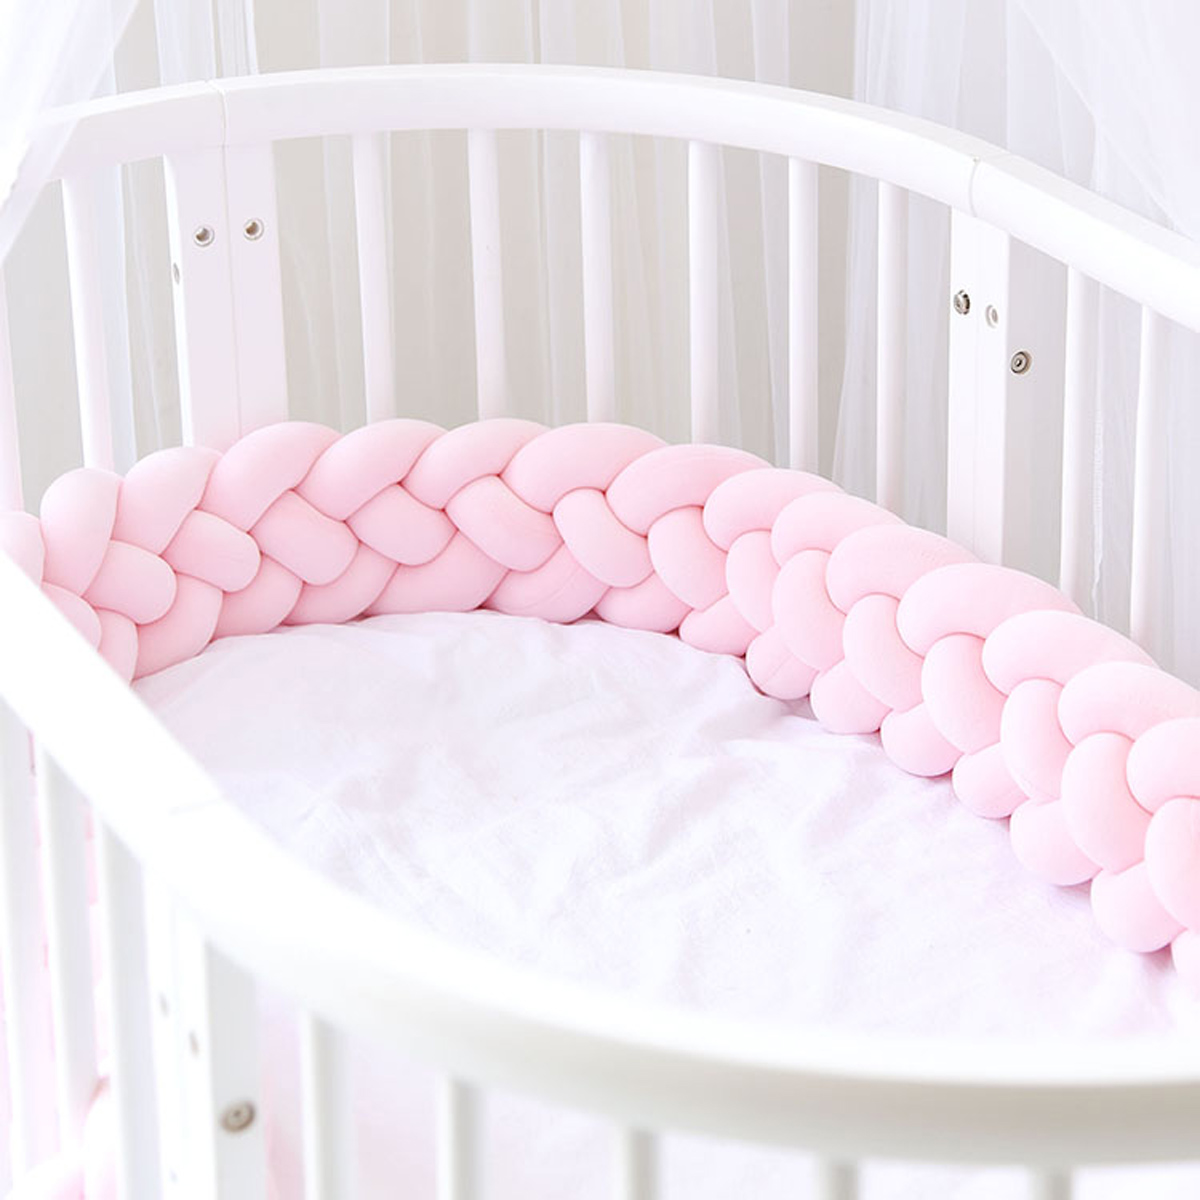 Soft Knit Plush Pillow Baby Crib Bedside Protector White Powder Blue Green 4 Strands 3M Knotted Braided Plush Bumper Nursery Cradle Newborn Gift Nursery Decor Baby Bedding Bumpers Baby Bumpers